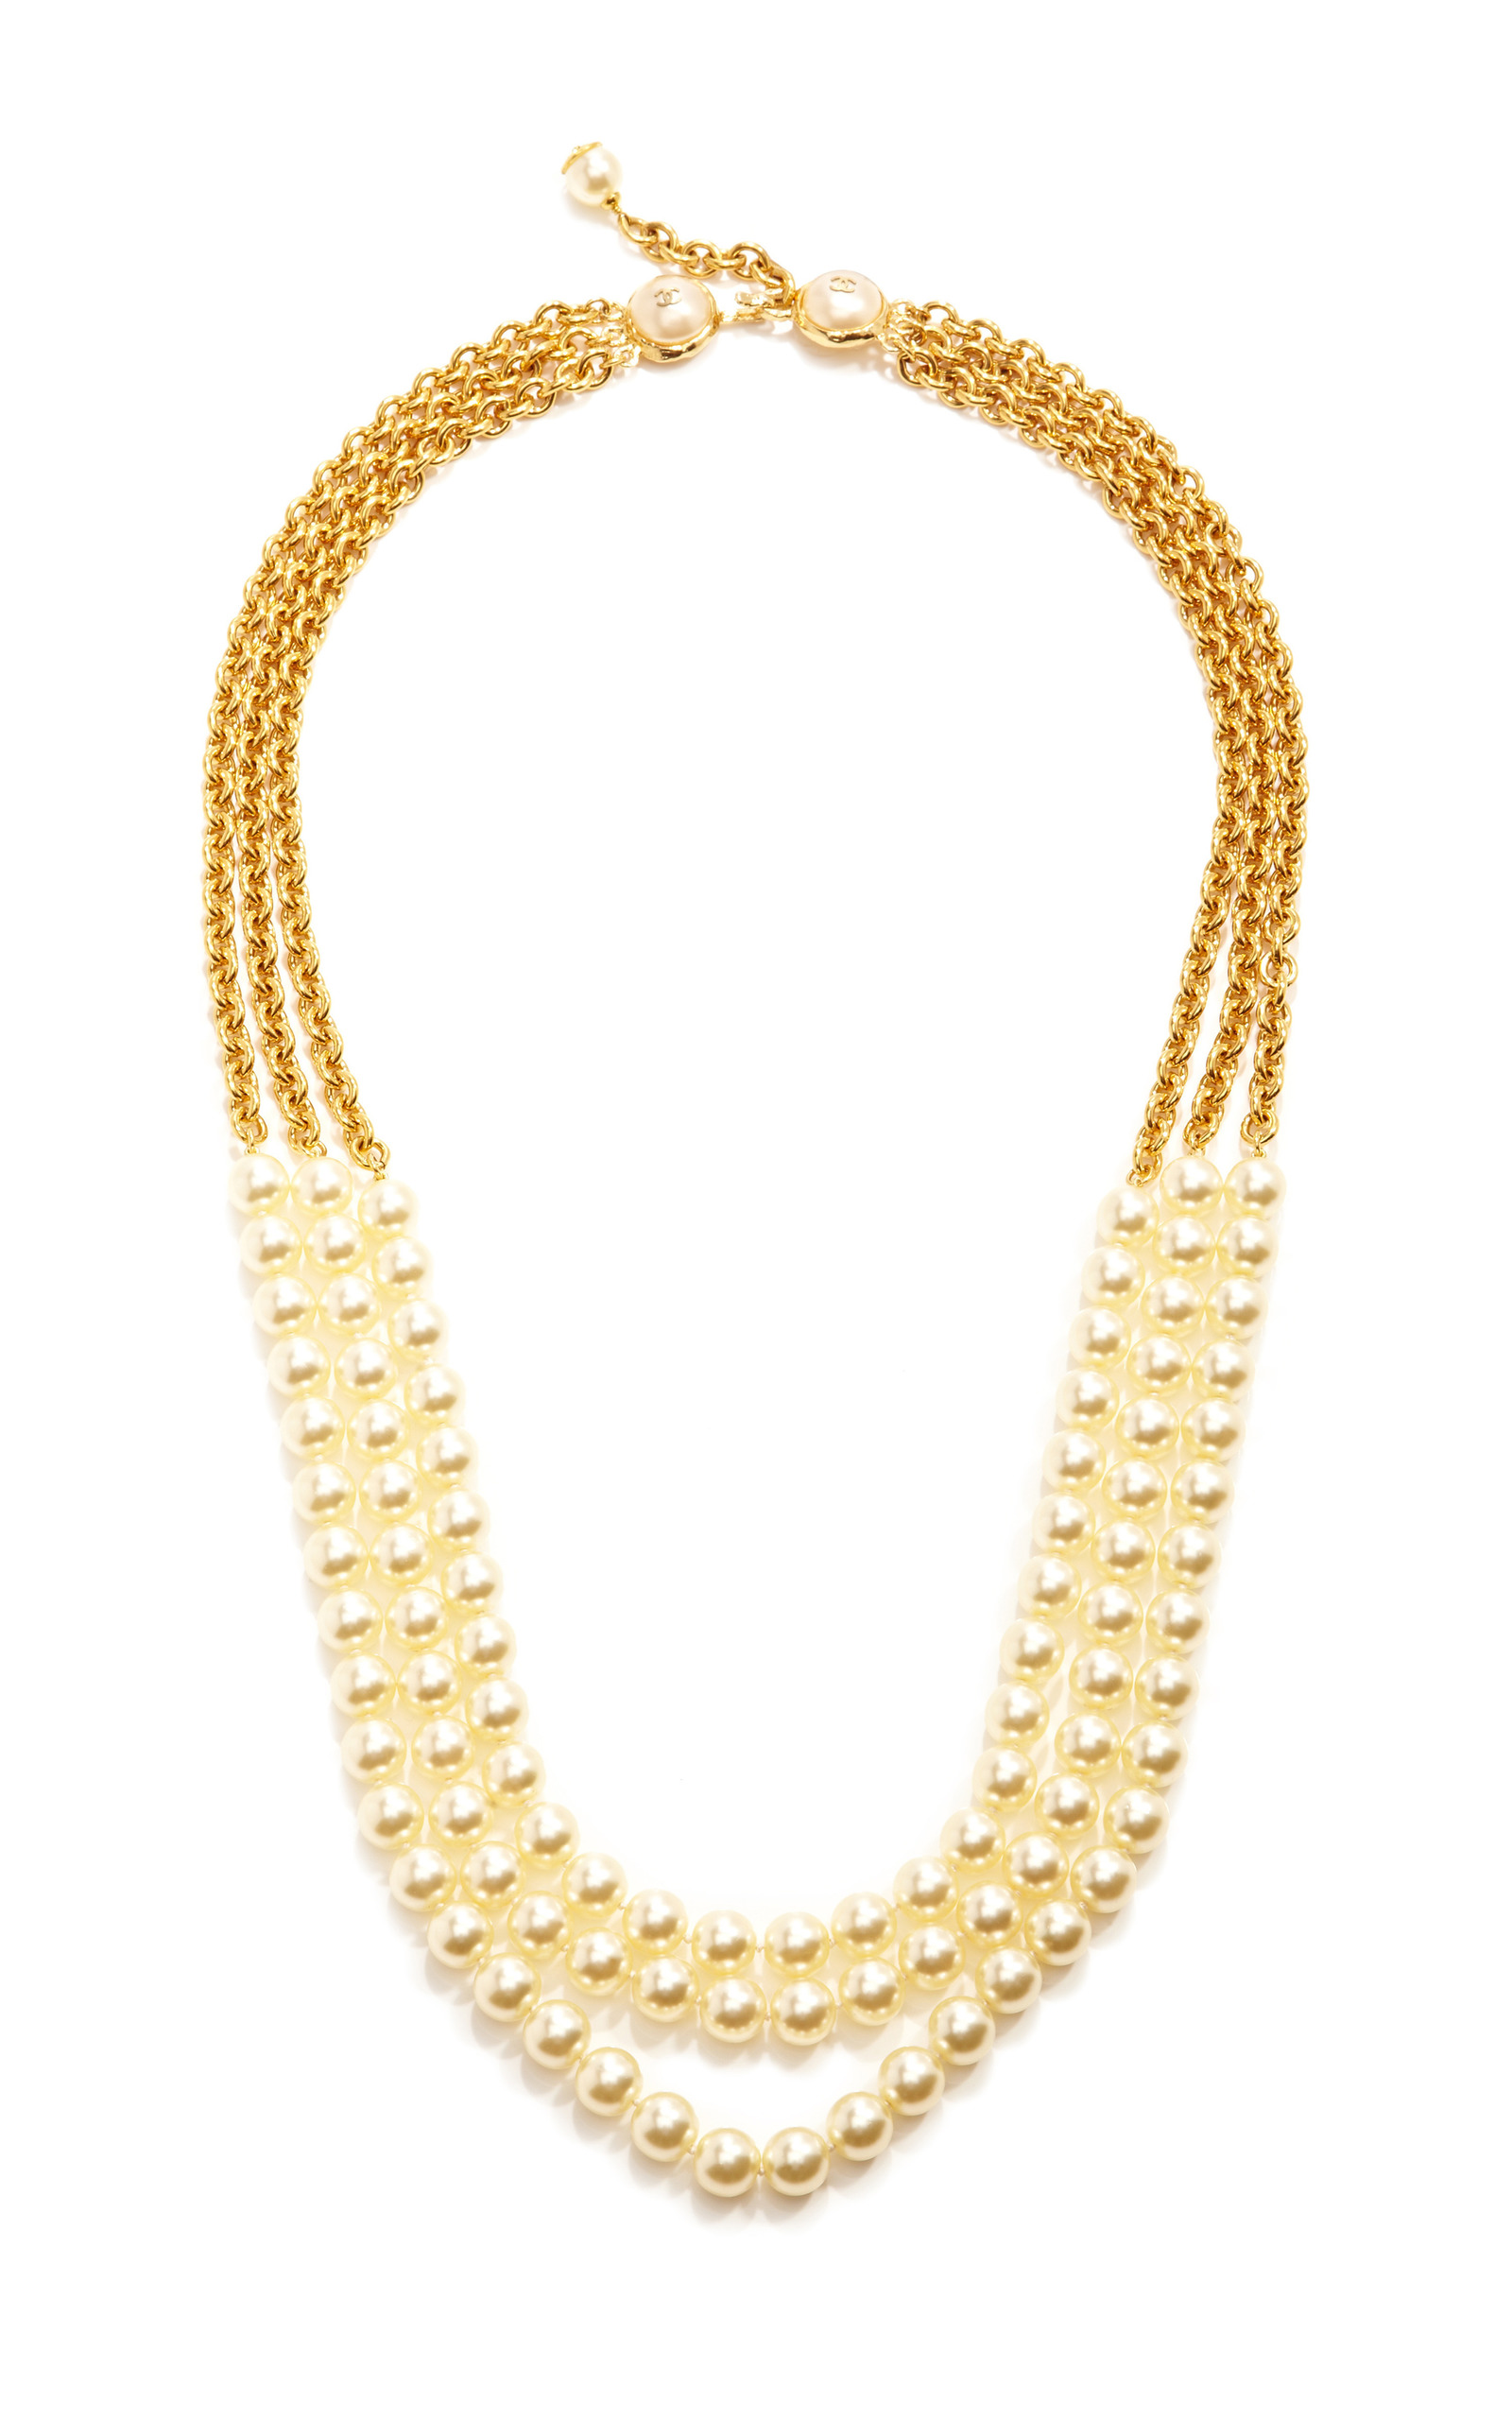 17869e861f38 Vintage Chanel Three Strand Pearl Necklace by Collectible Jackets ...